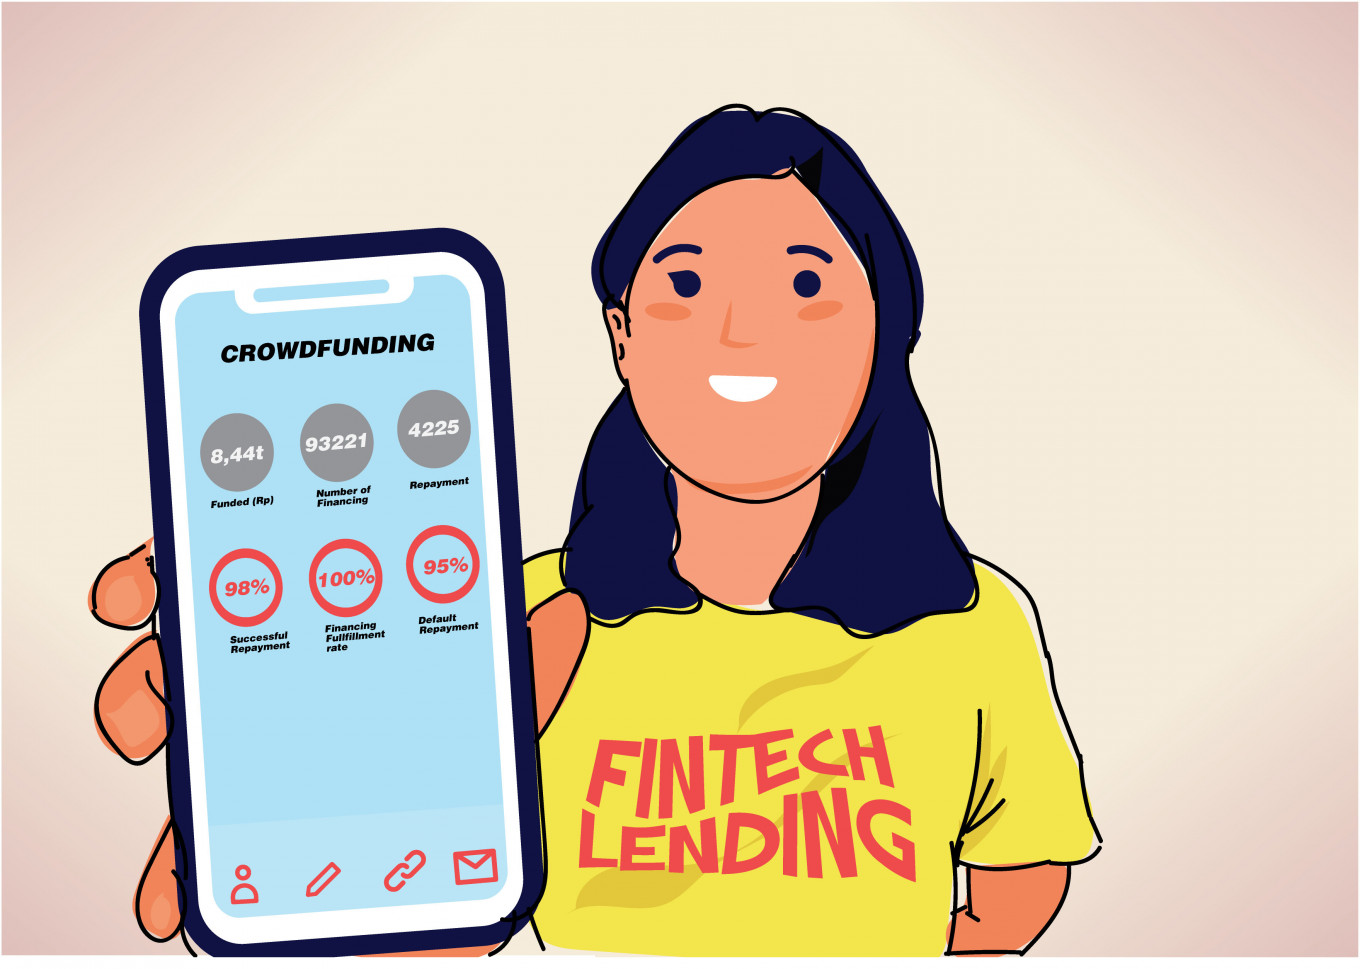 Time for fintech to shine